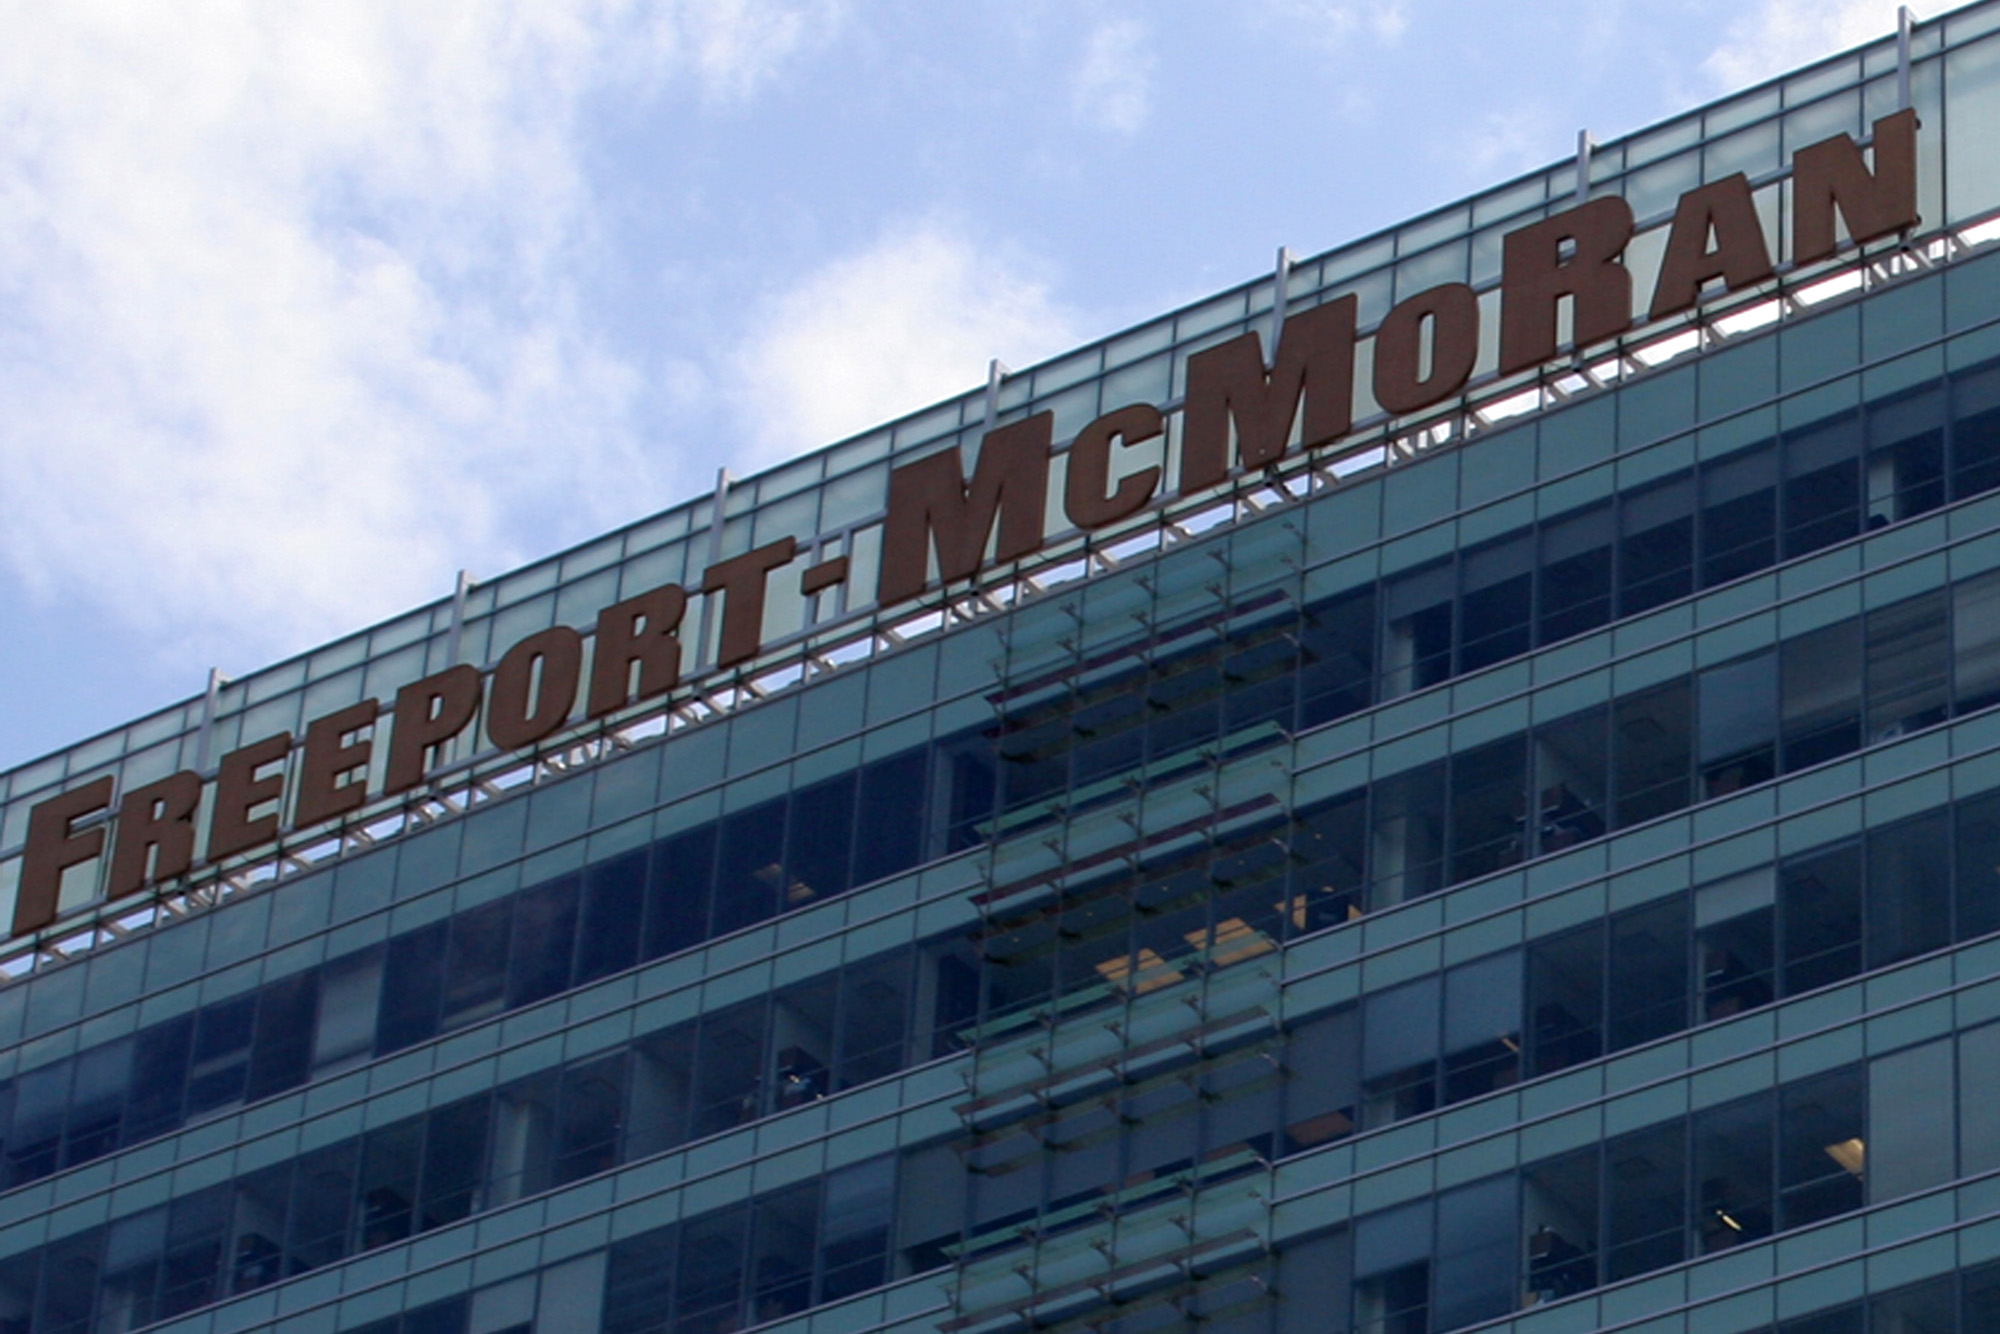 Freeport-McMoran Copper & Gold Inc.'s headquarters in downtown Phoenix. The company announced this week that it's investing $500 million in firm that's expanding its shallow-water drilling in the Gulf of Mexico. (Cronkite News Service Photo by Rebecca McClay)